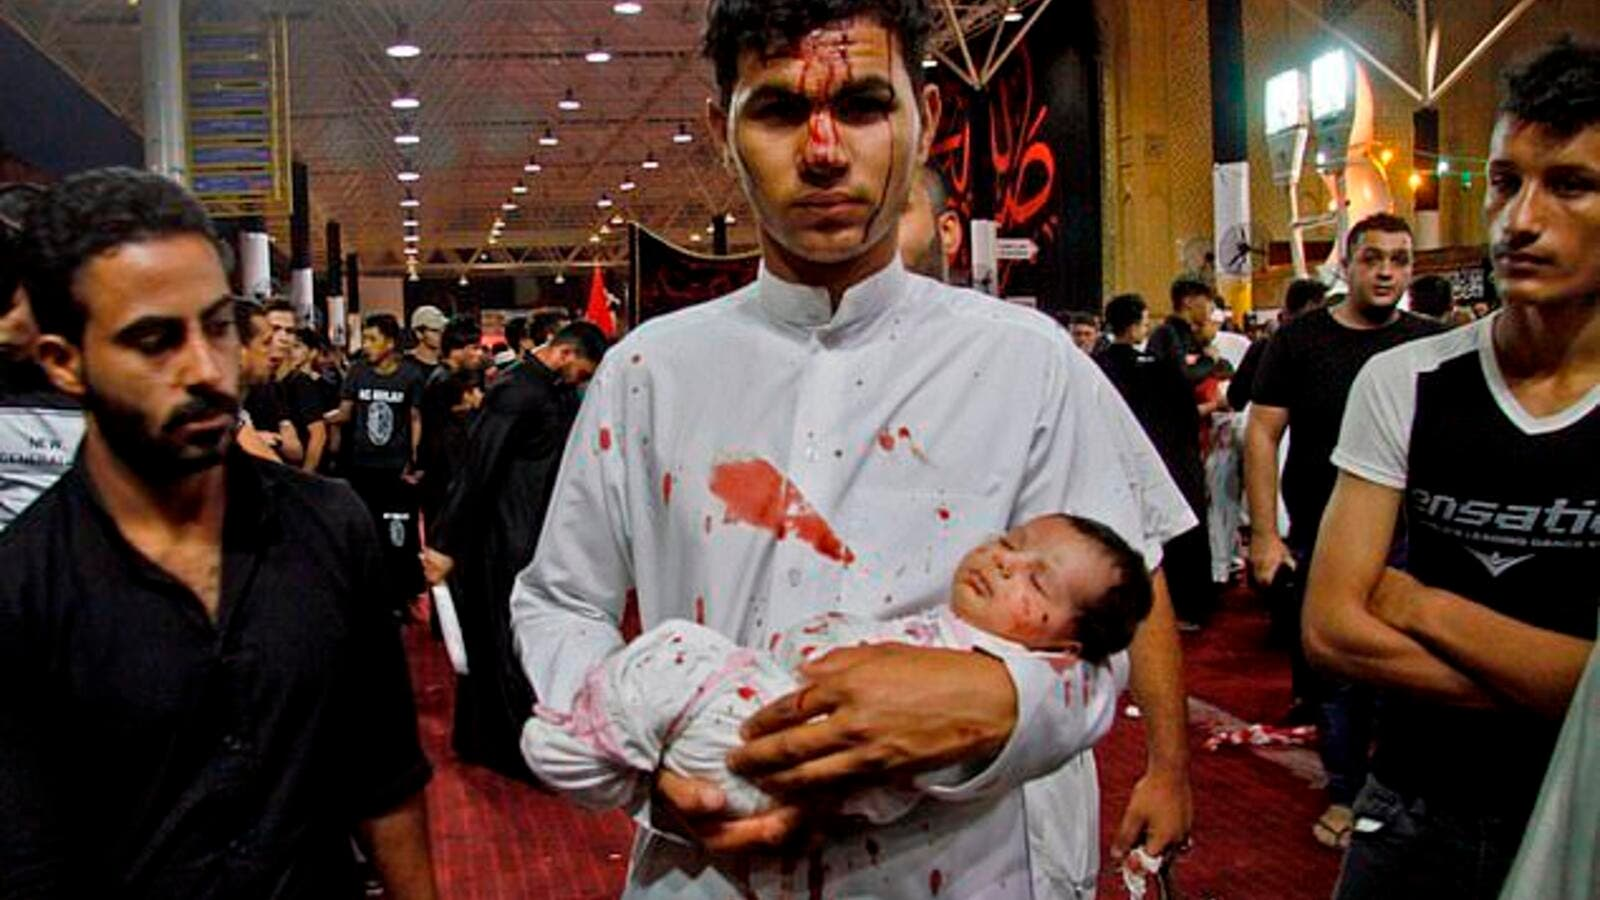 Young participant: A man holds a baby during an Ashura cutting ceremony, which sees male Shiite Muslims self-flagellate to commemorate the death of Imam Hussein, the grandson of the Prophet Muhammad, on the battlefield (AFP)